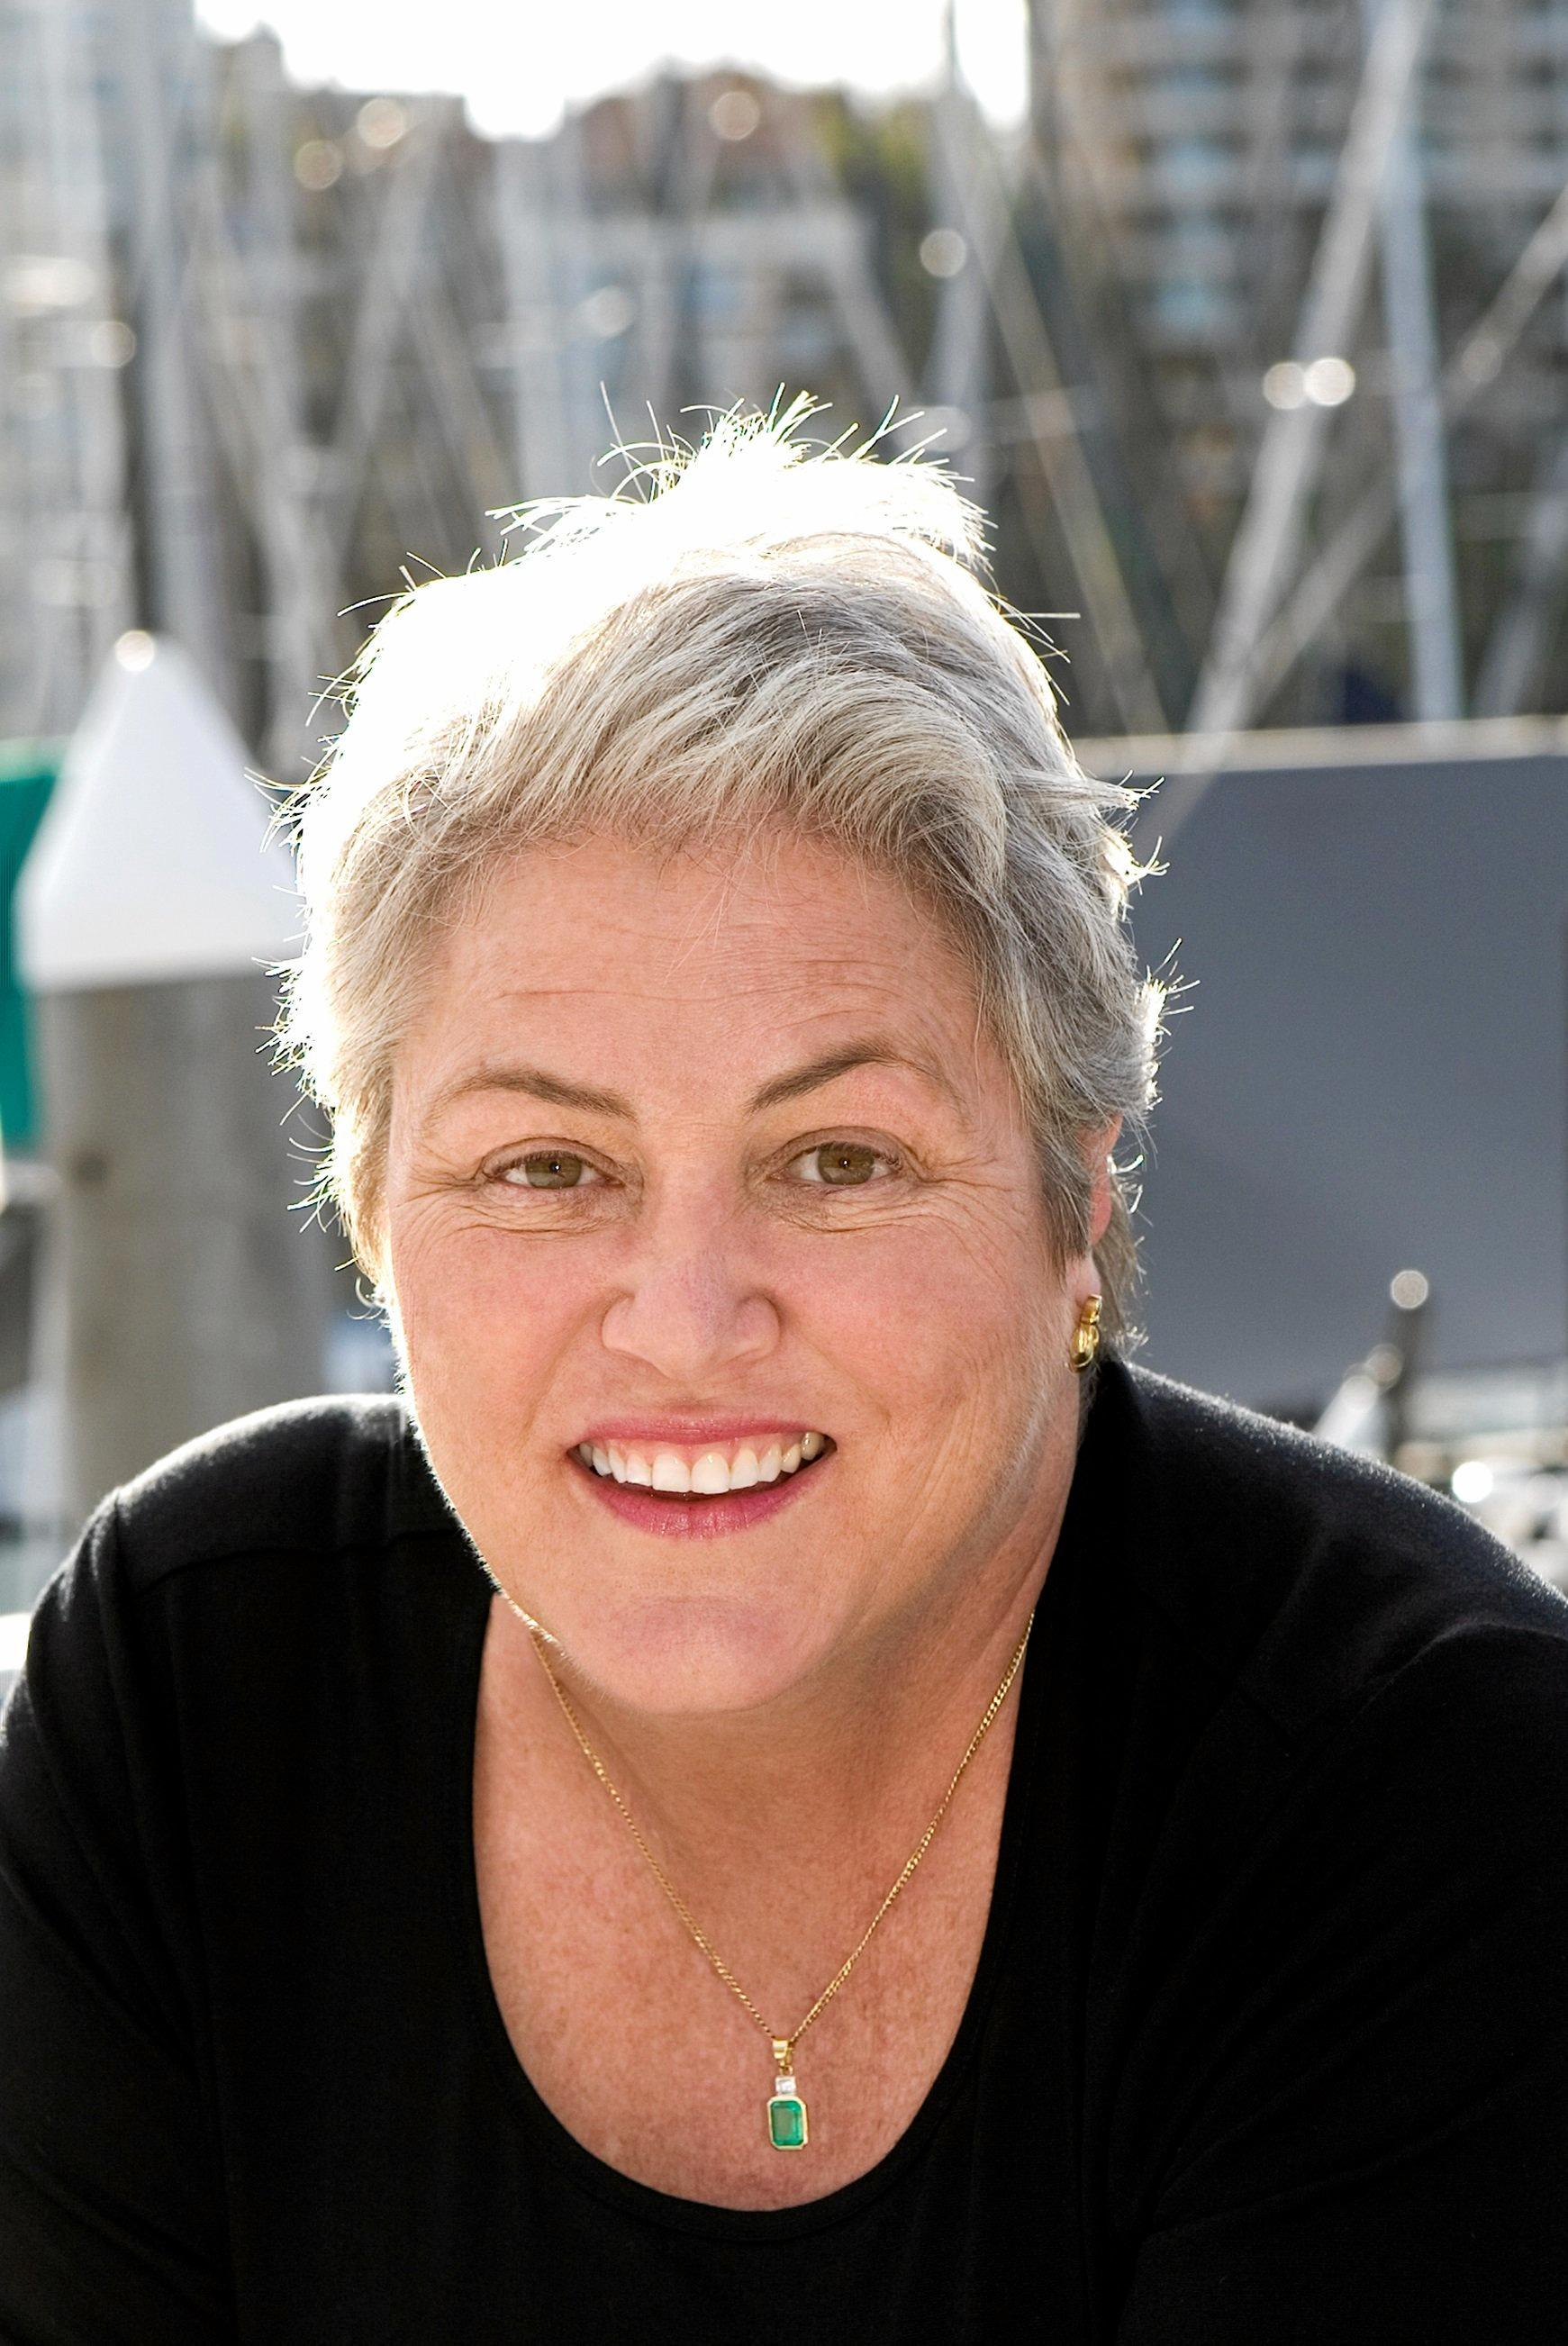 Yamba Marina owner Kay Cottee said the Clean Marina accreditation is important to her operation.